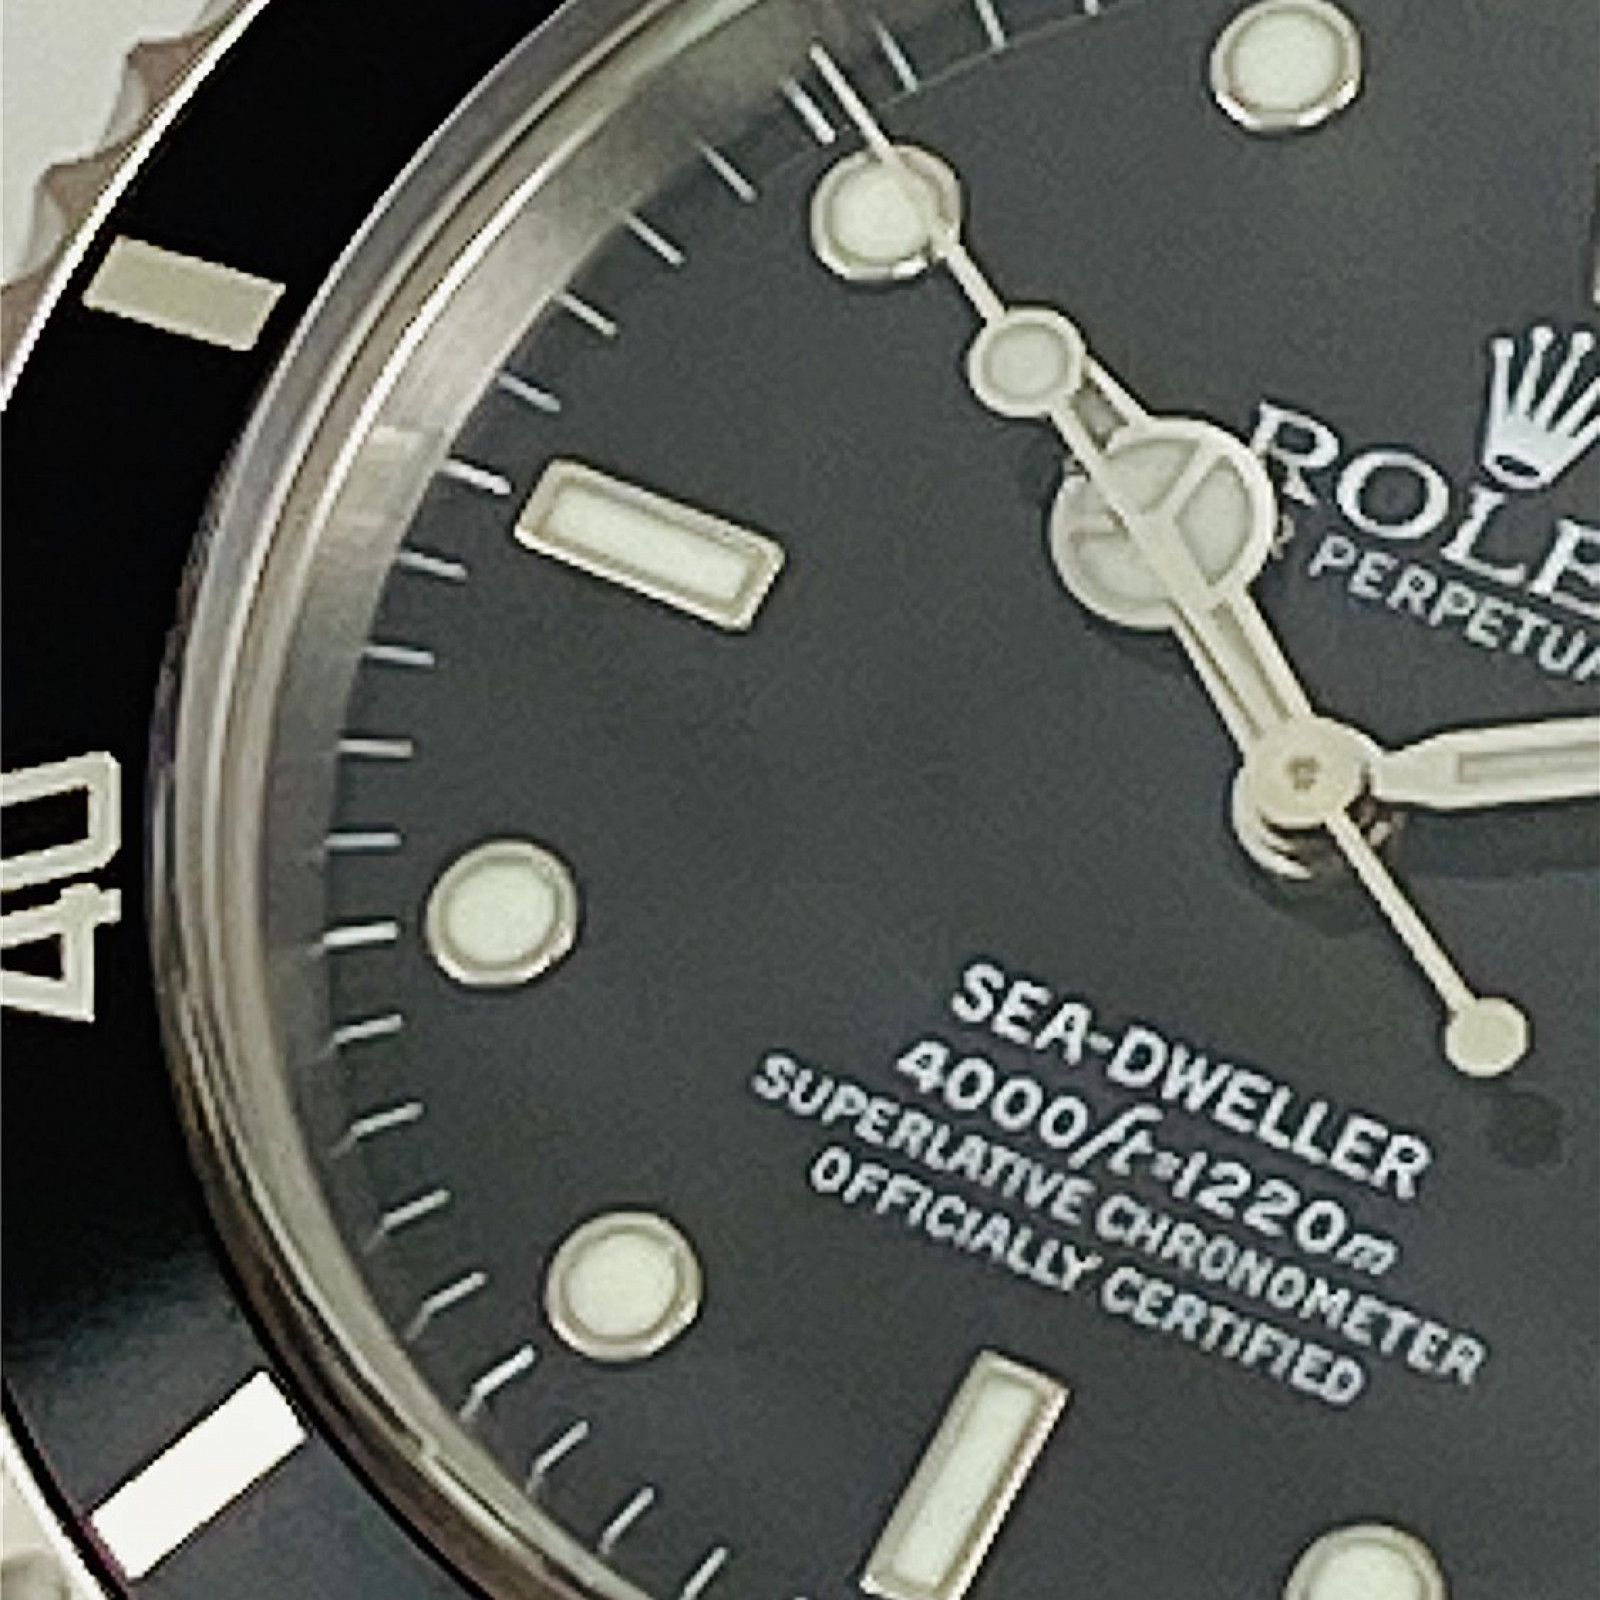 1999 Rolex Sea-Dweller Ref. 16600 Single